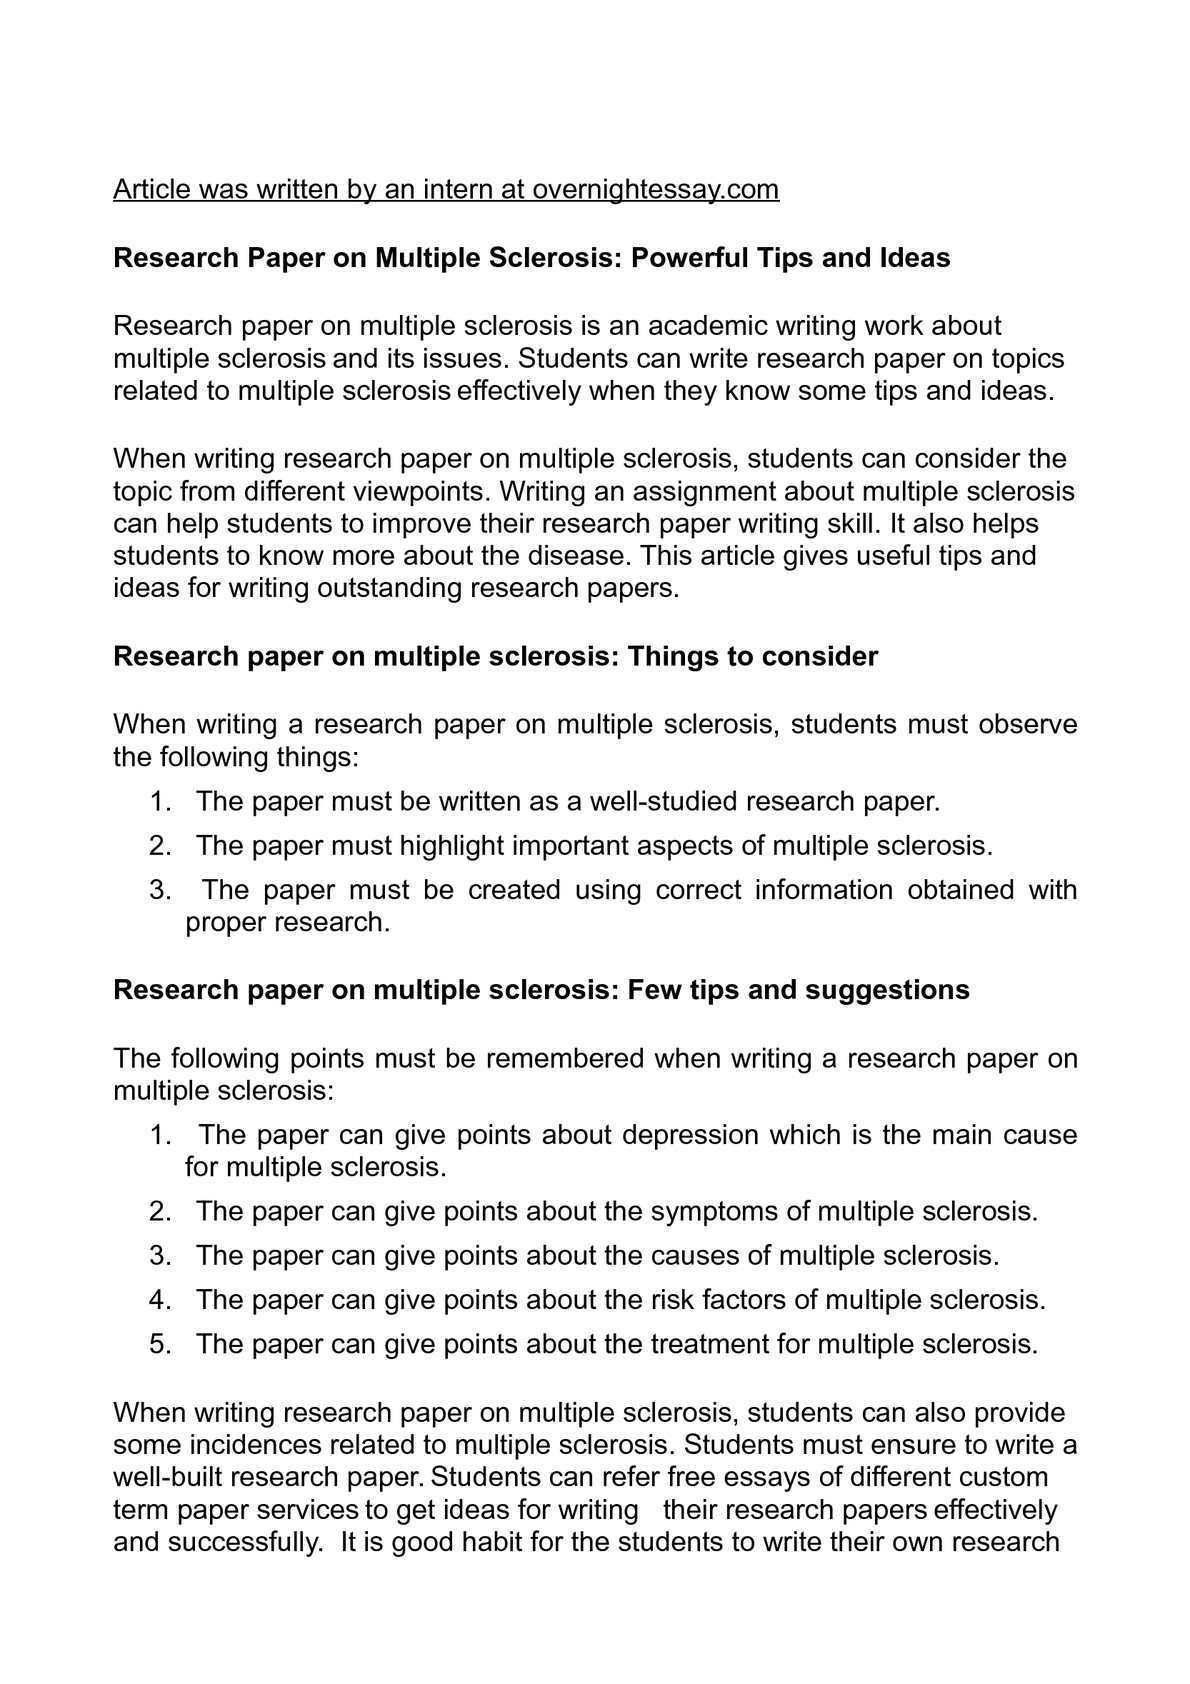 Multiple sclerosis research paper